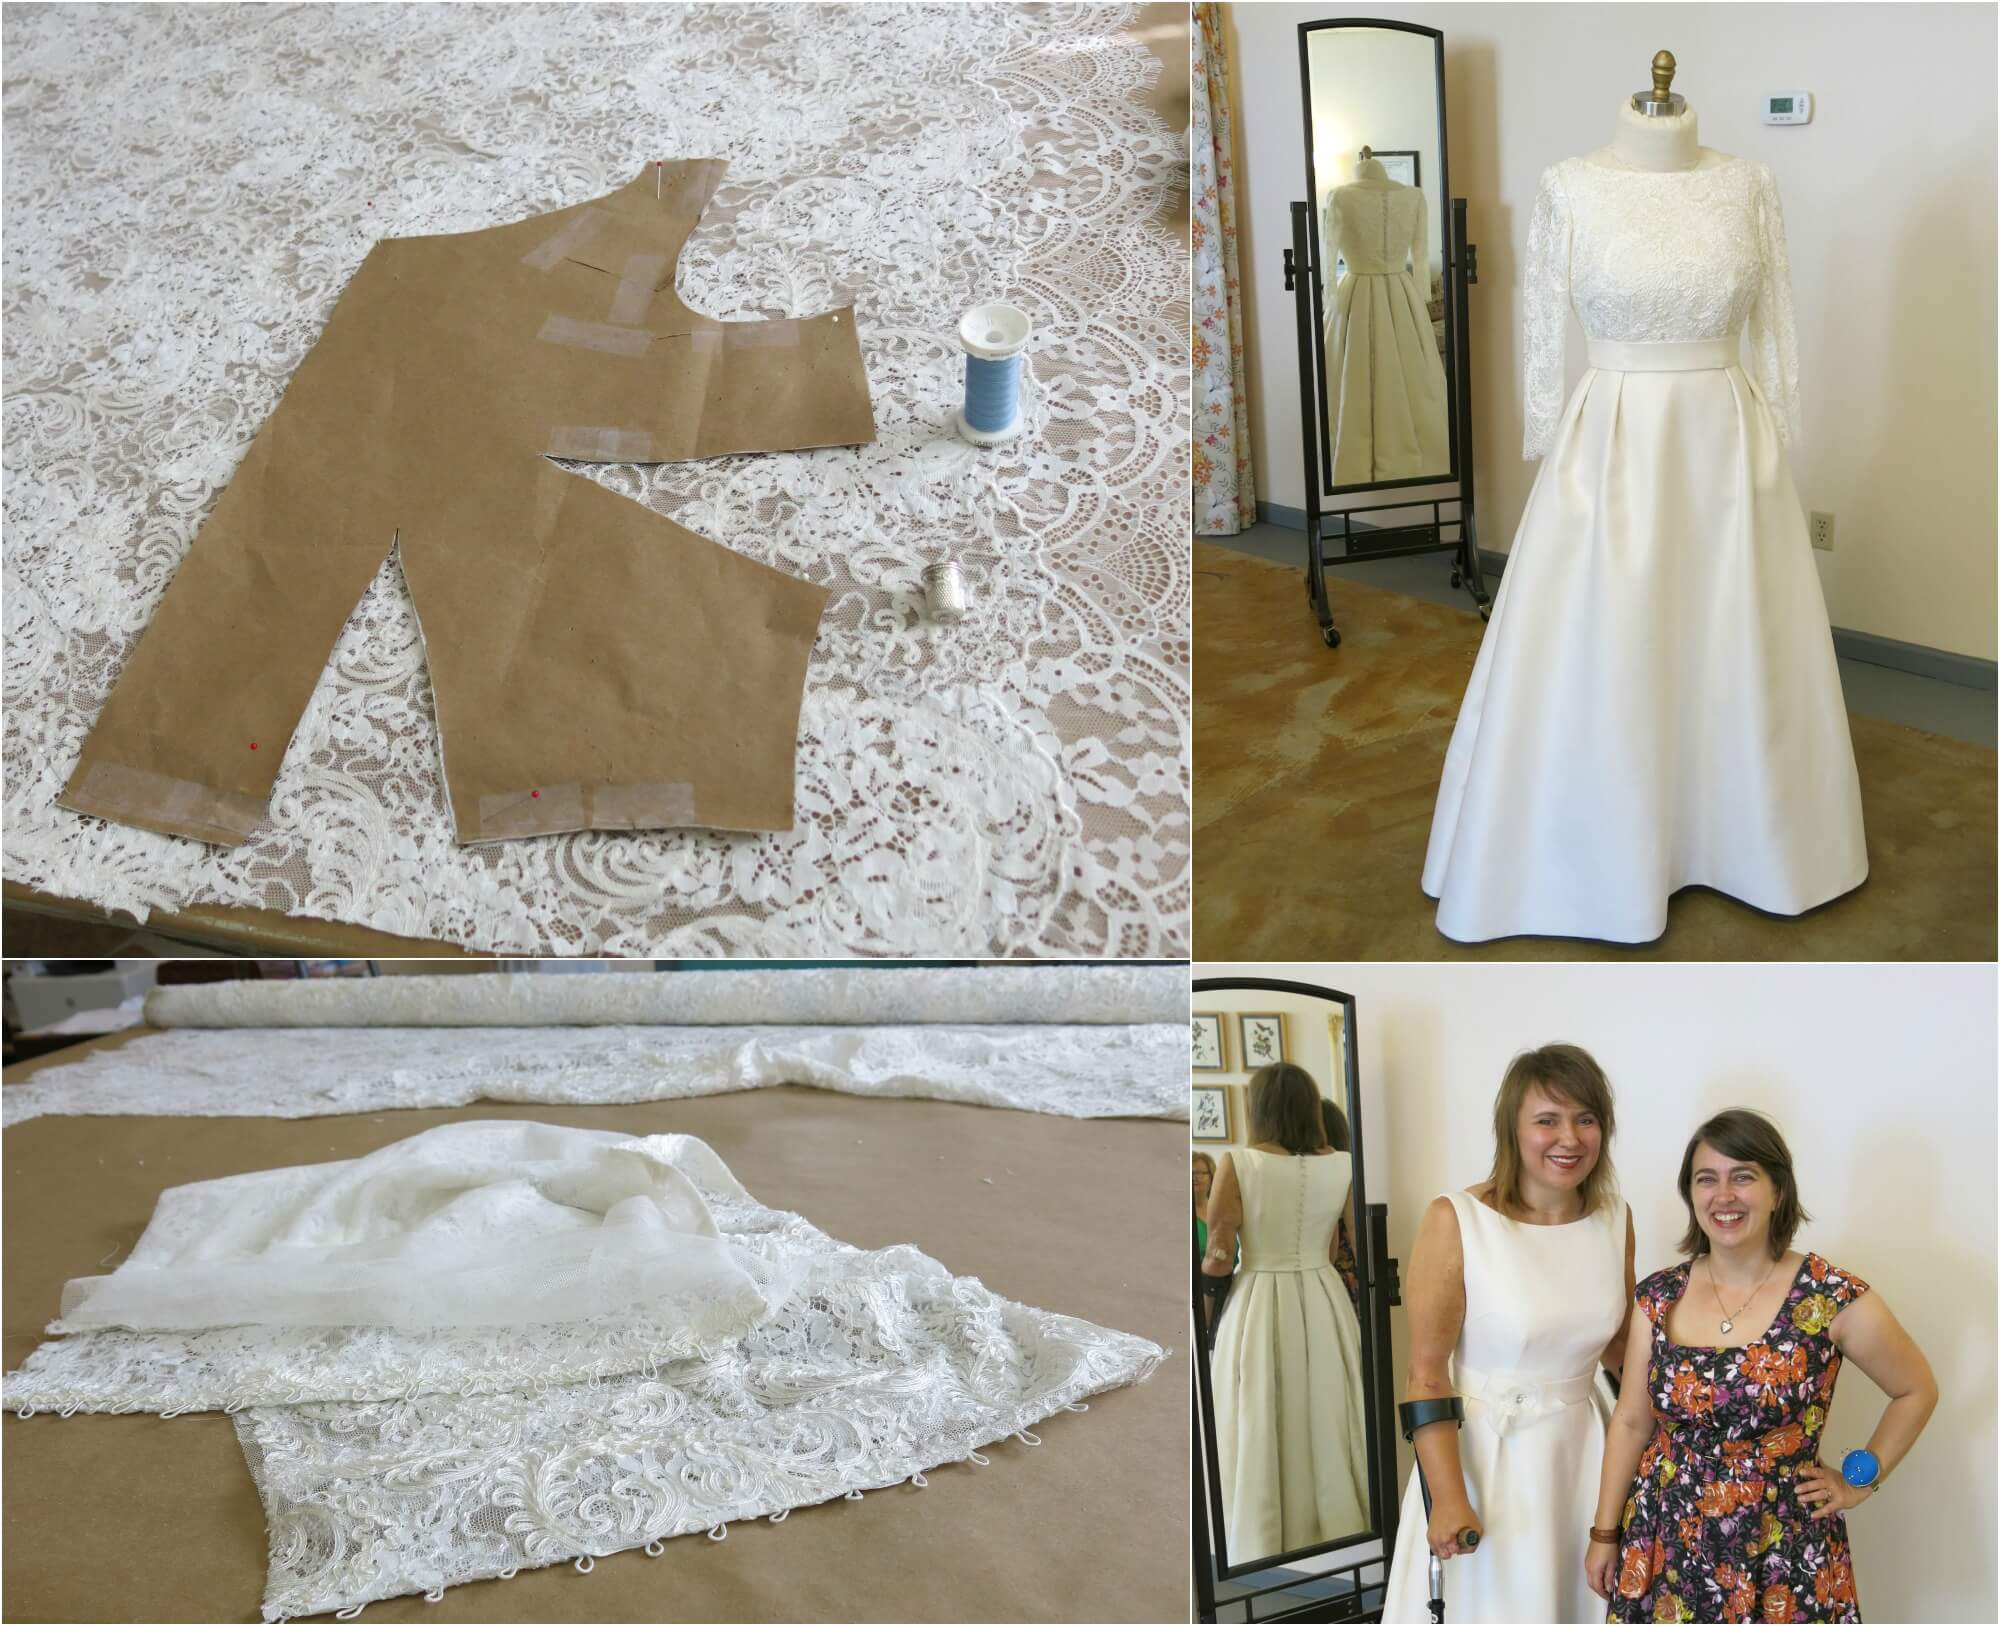 Deborah's Lace Top and Final Fitting by Brooks Ann Camper Bridal Couture